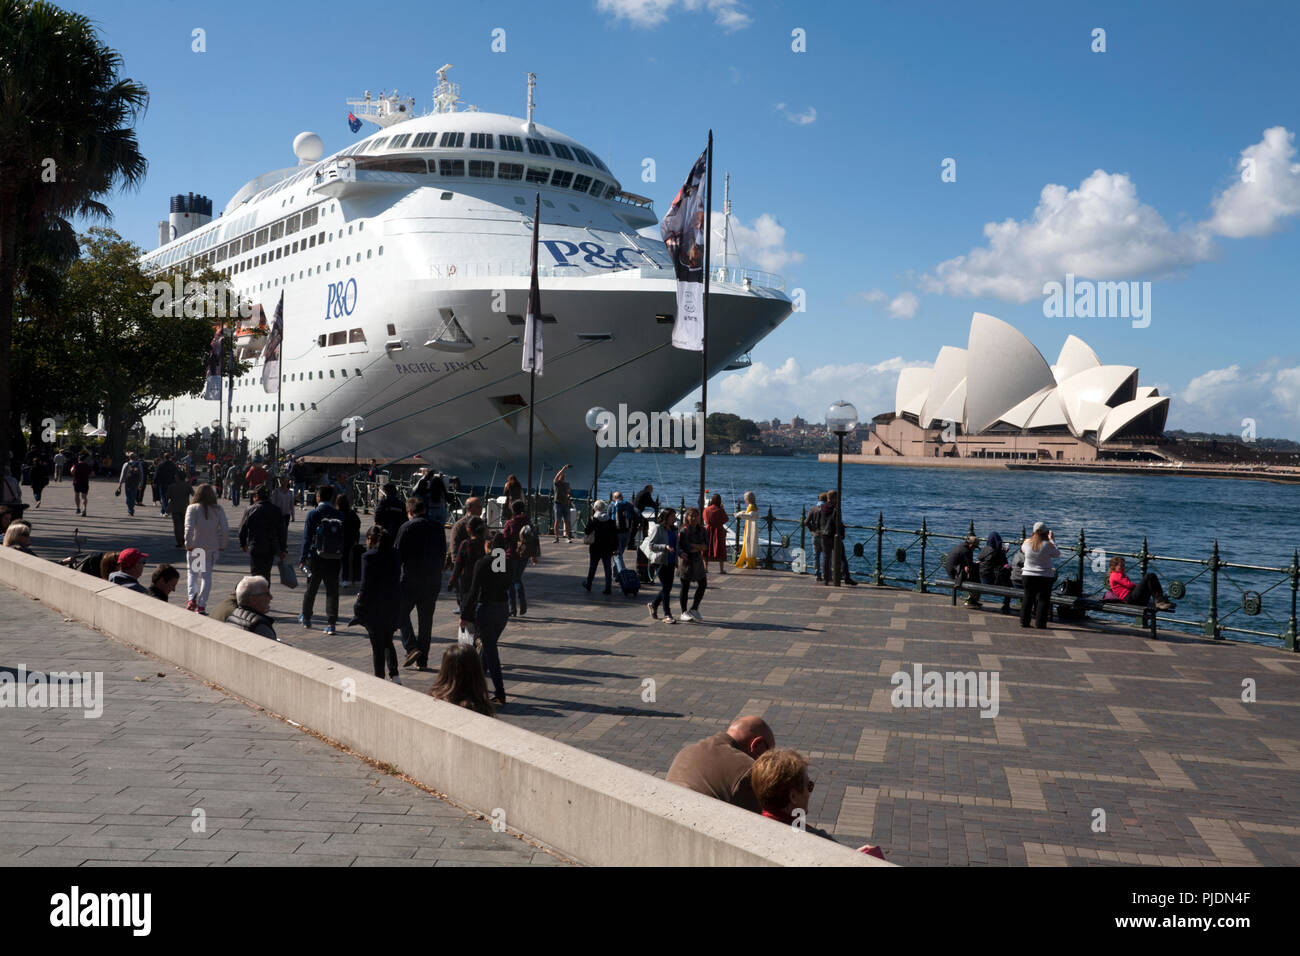 p&o cruise liner pacific jewel circular quay sydney new south wales australia - Stock Image